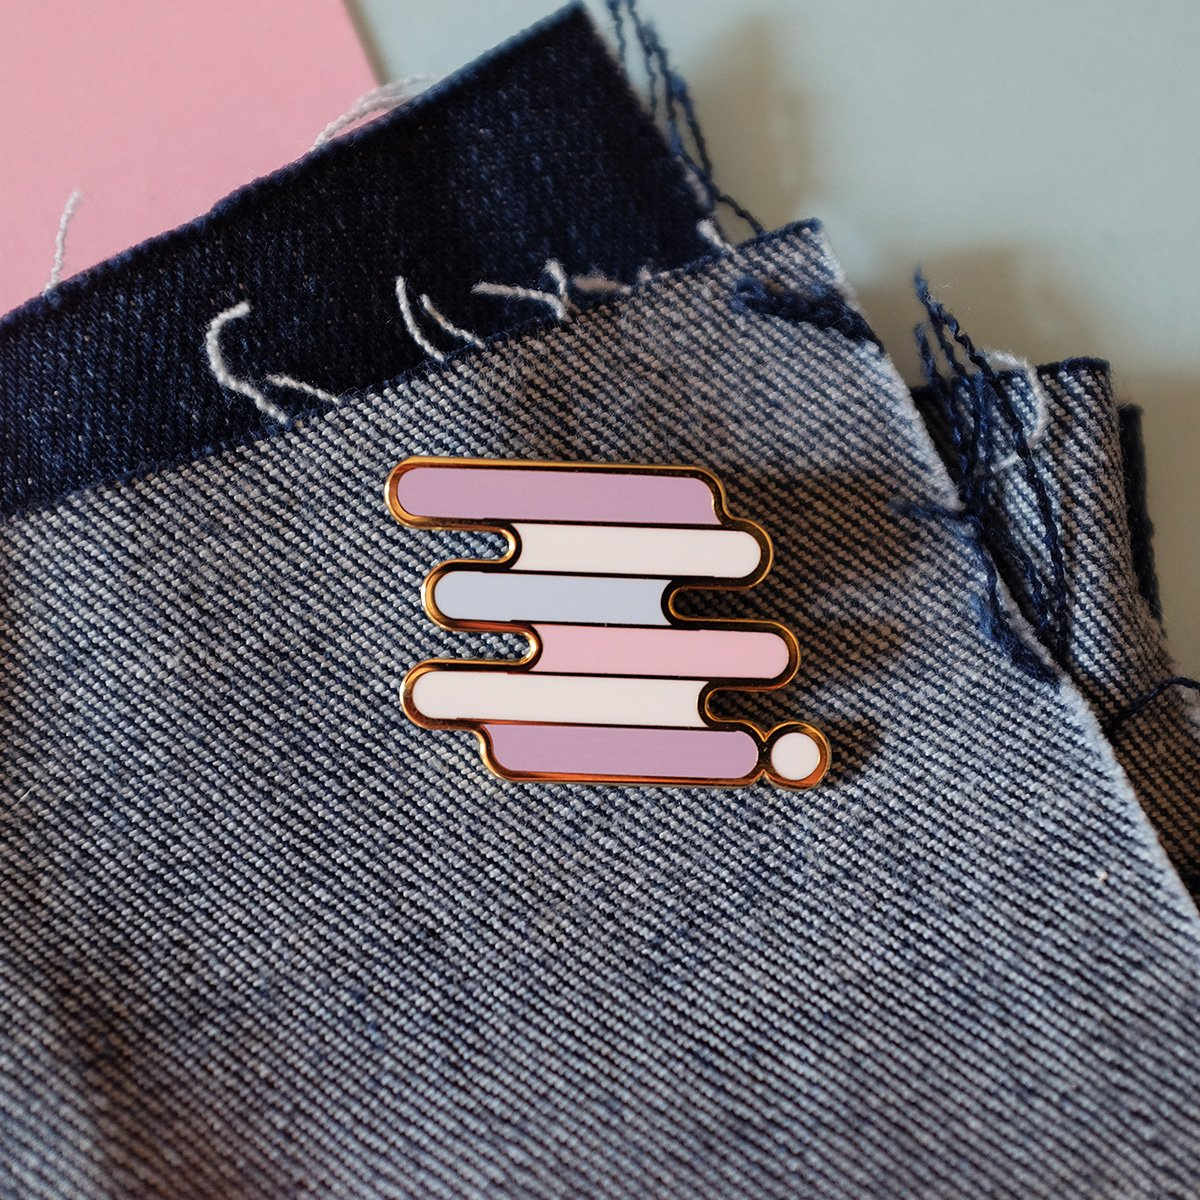 Intersex Pride Pin